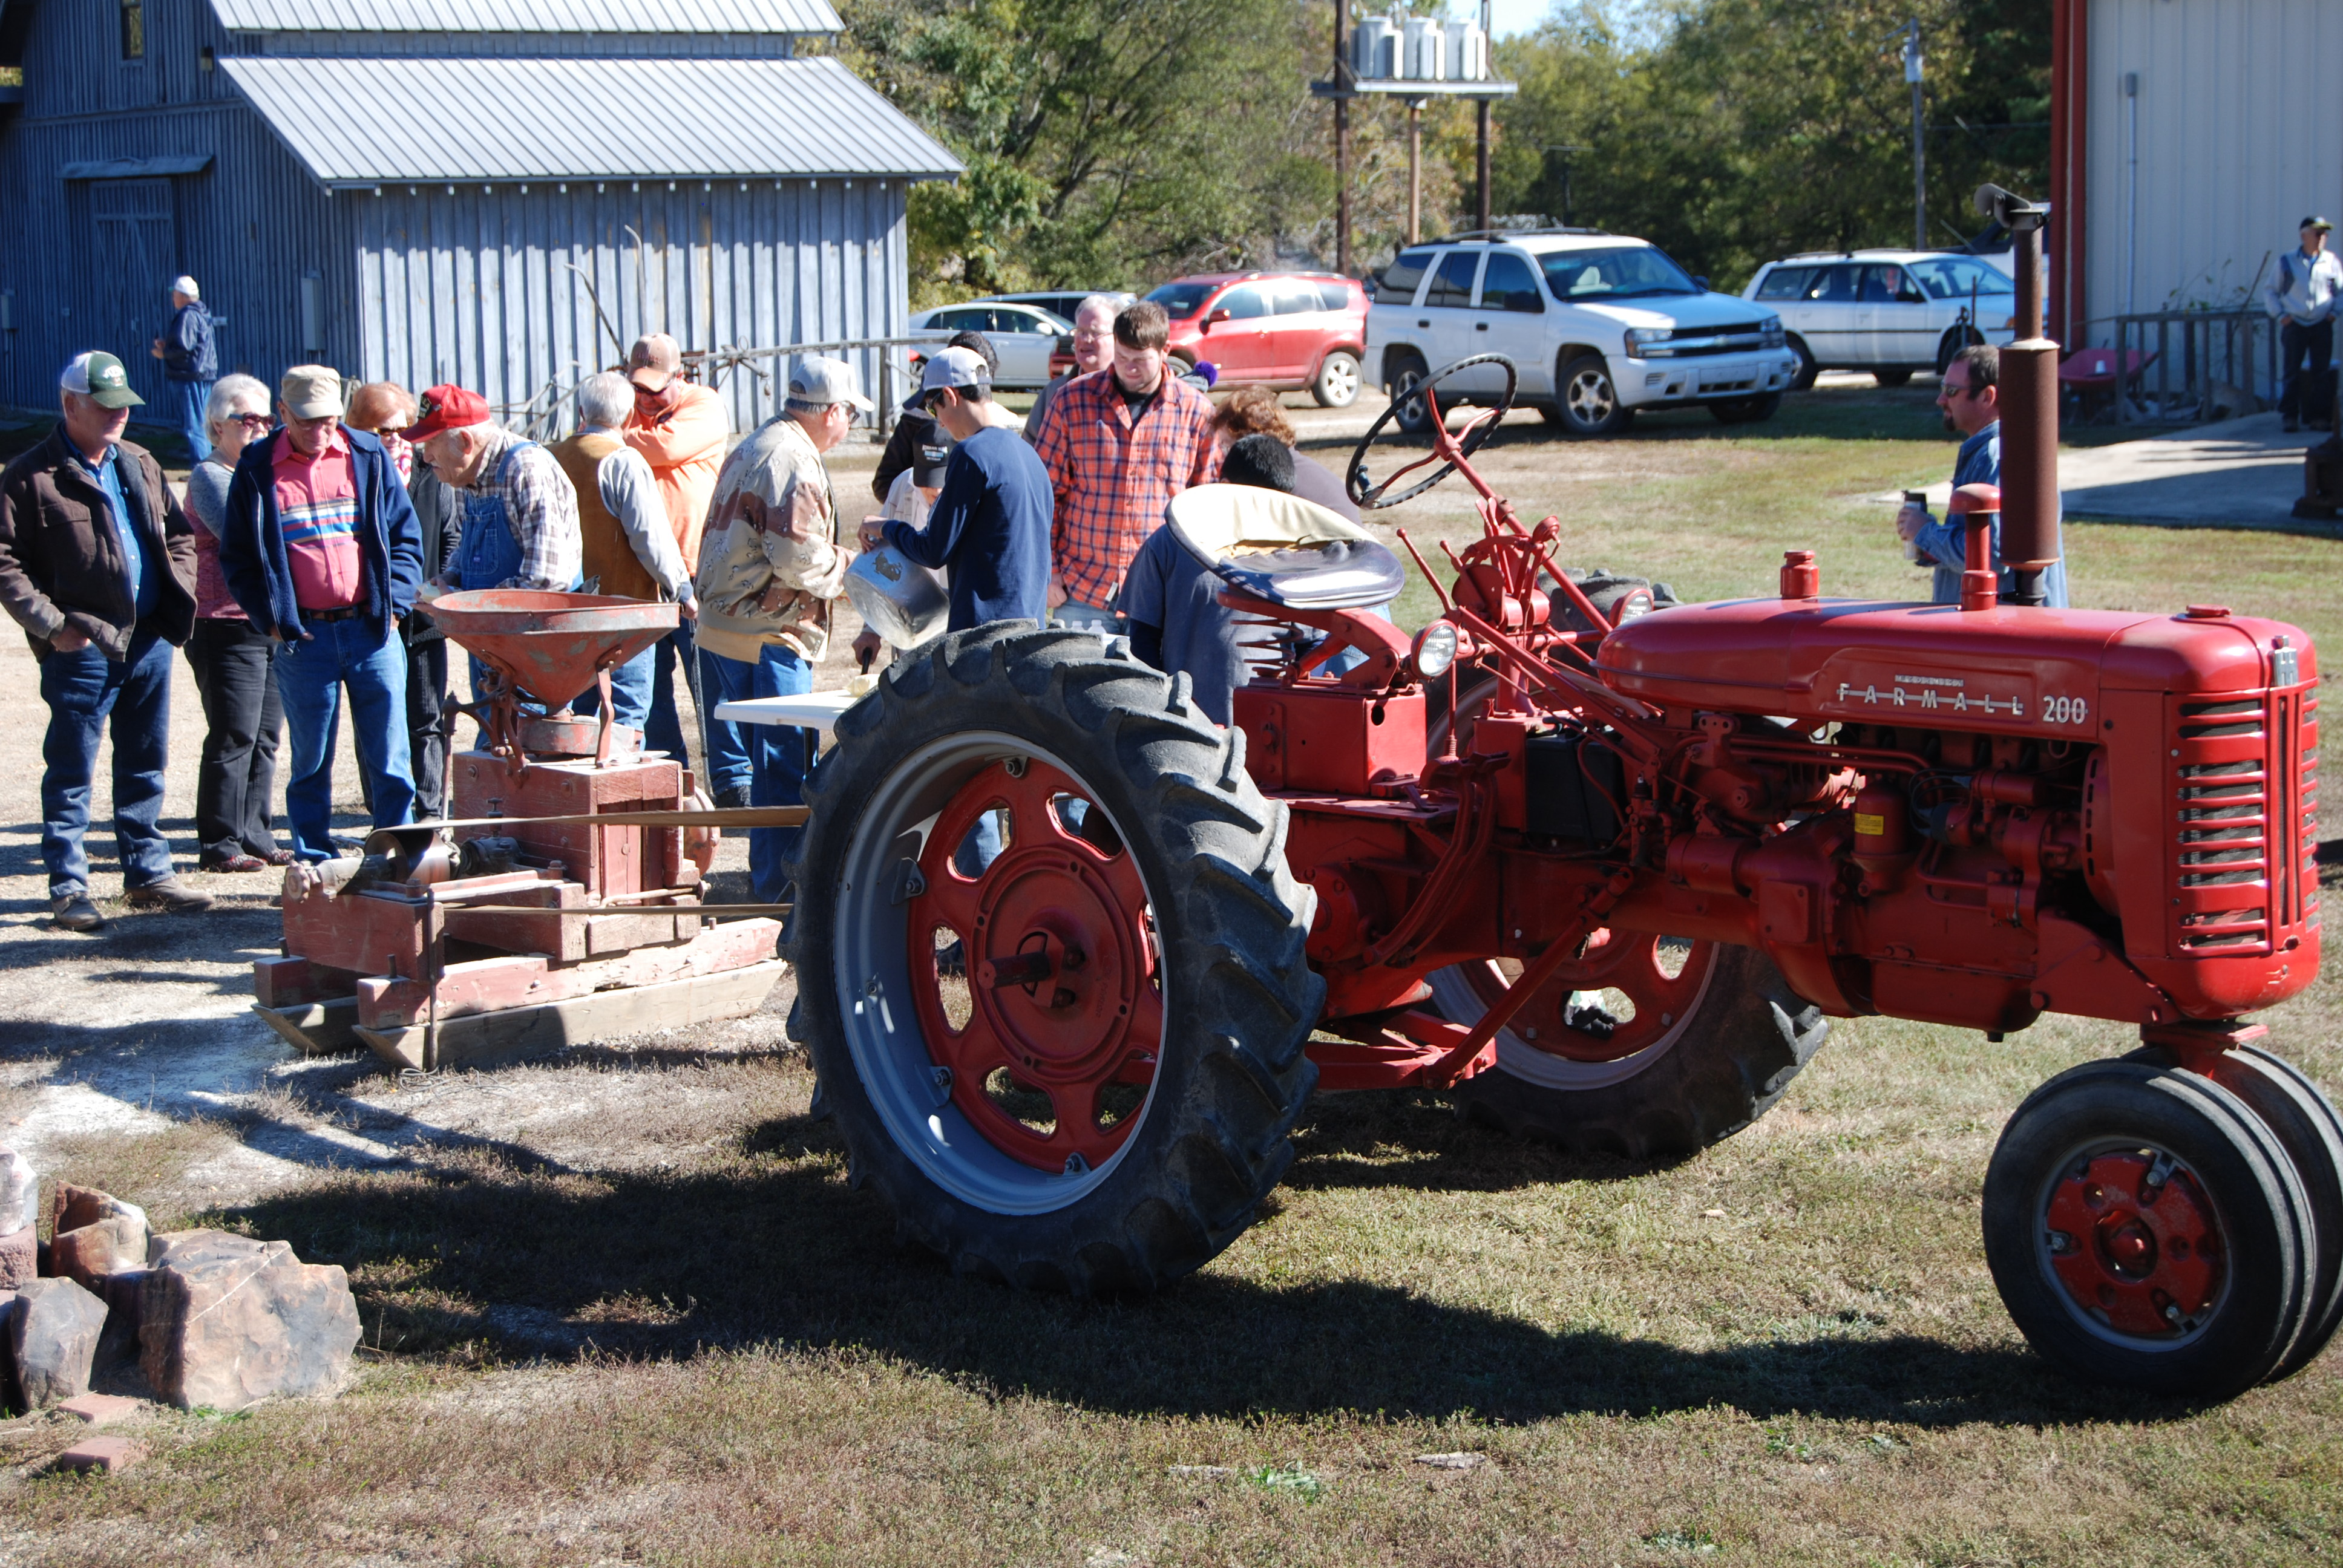 A real tractor (Stanley)